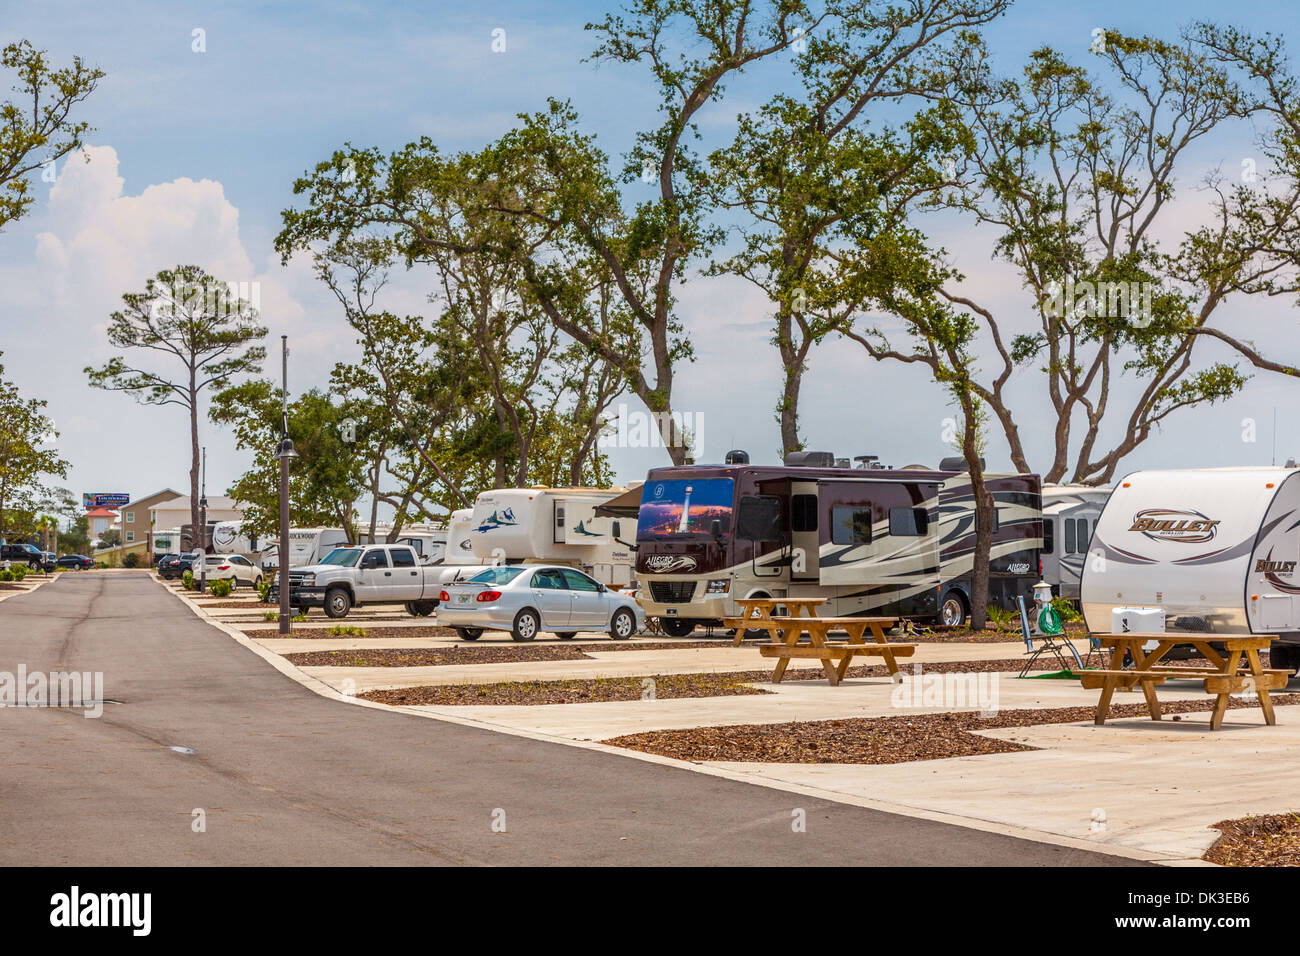 Motorhomes and travel trailers at St. Rosa RV Resort campground in Navarre, Florida - Stock Image